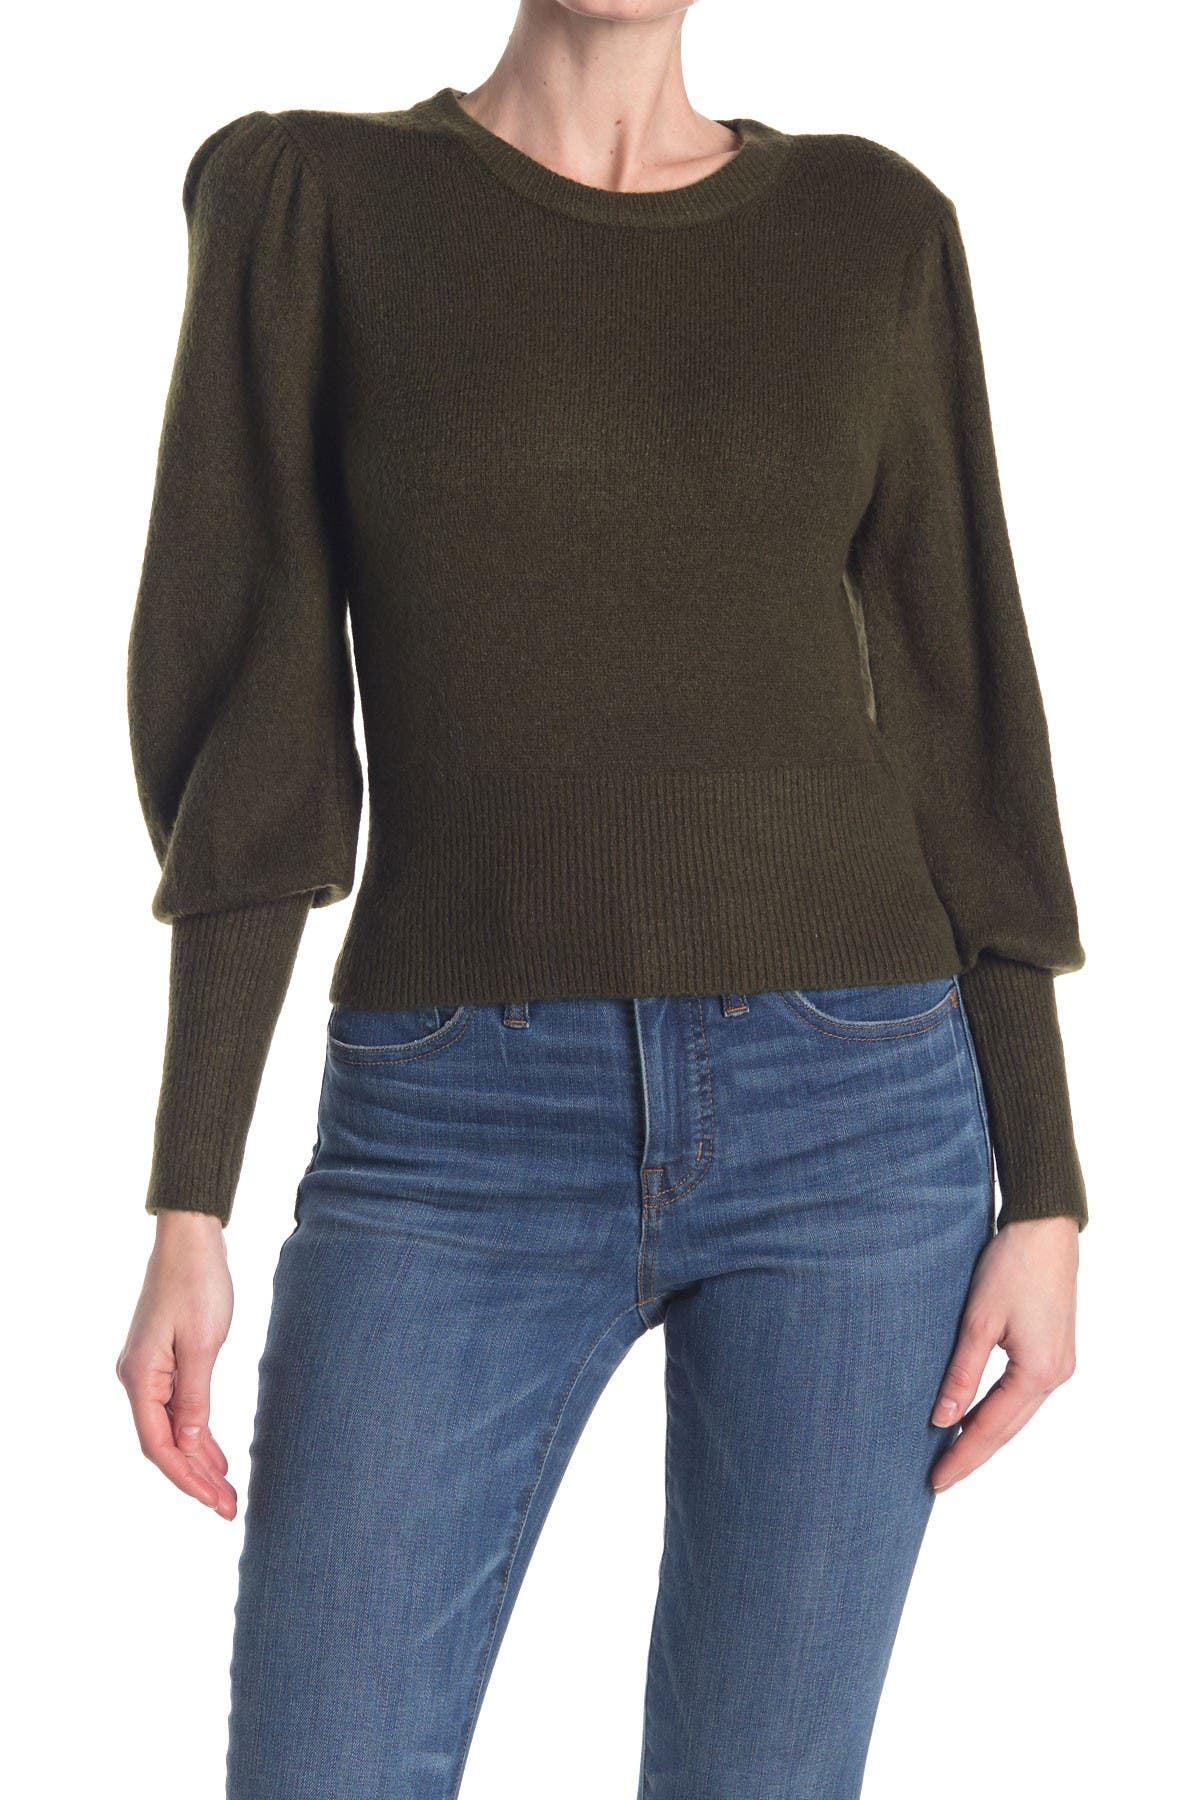 Image of Elodie Puffed Long Sleeve Pullover Sweater